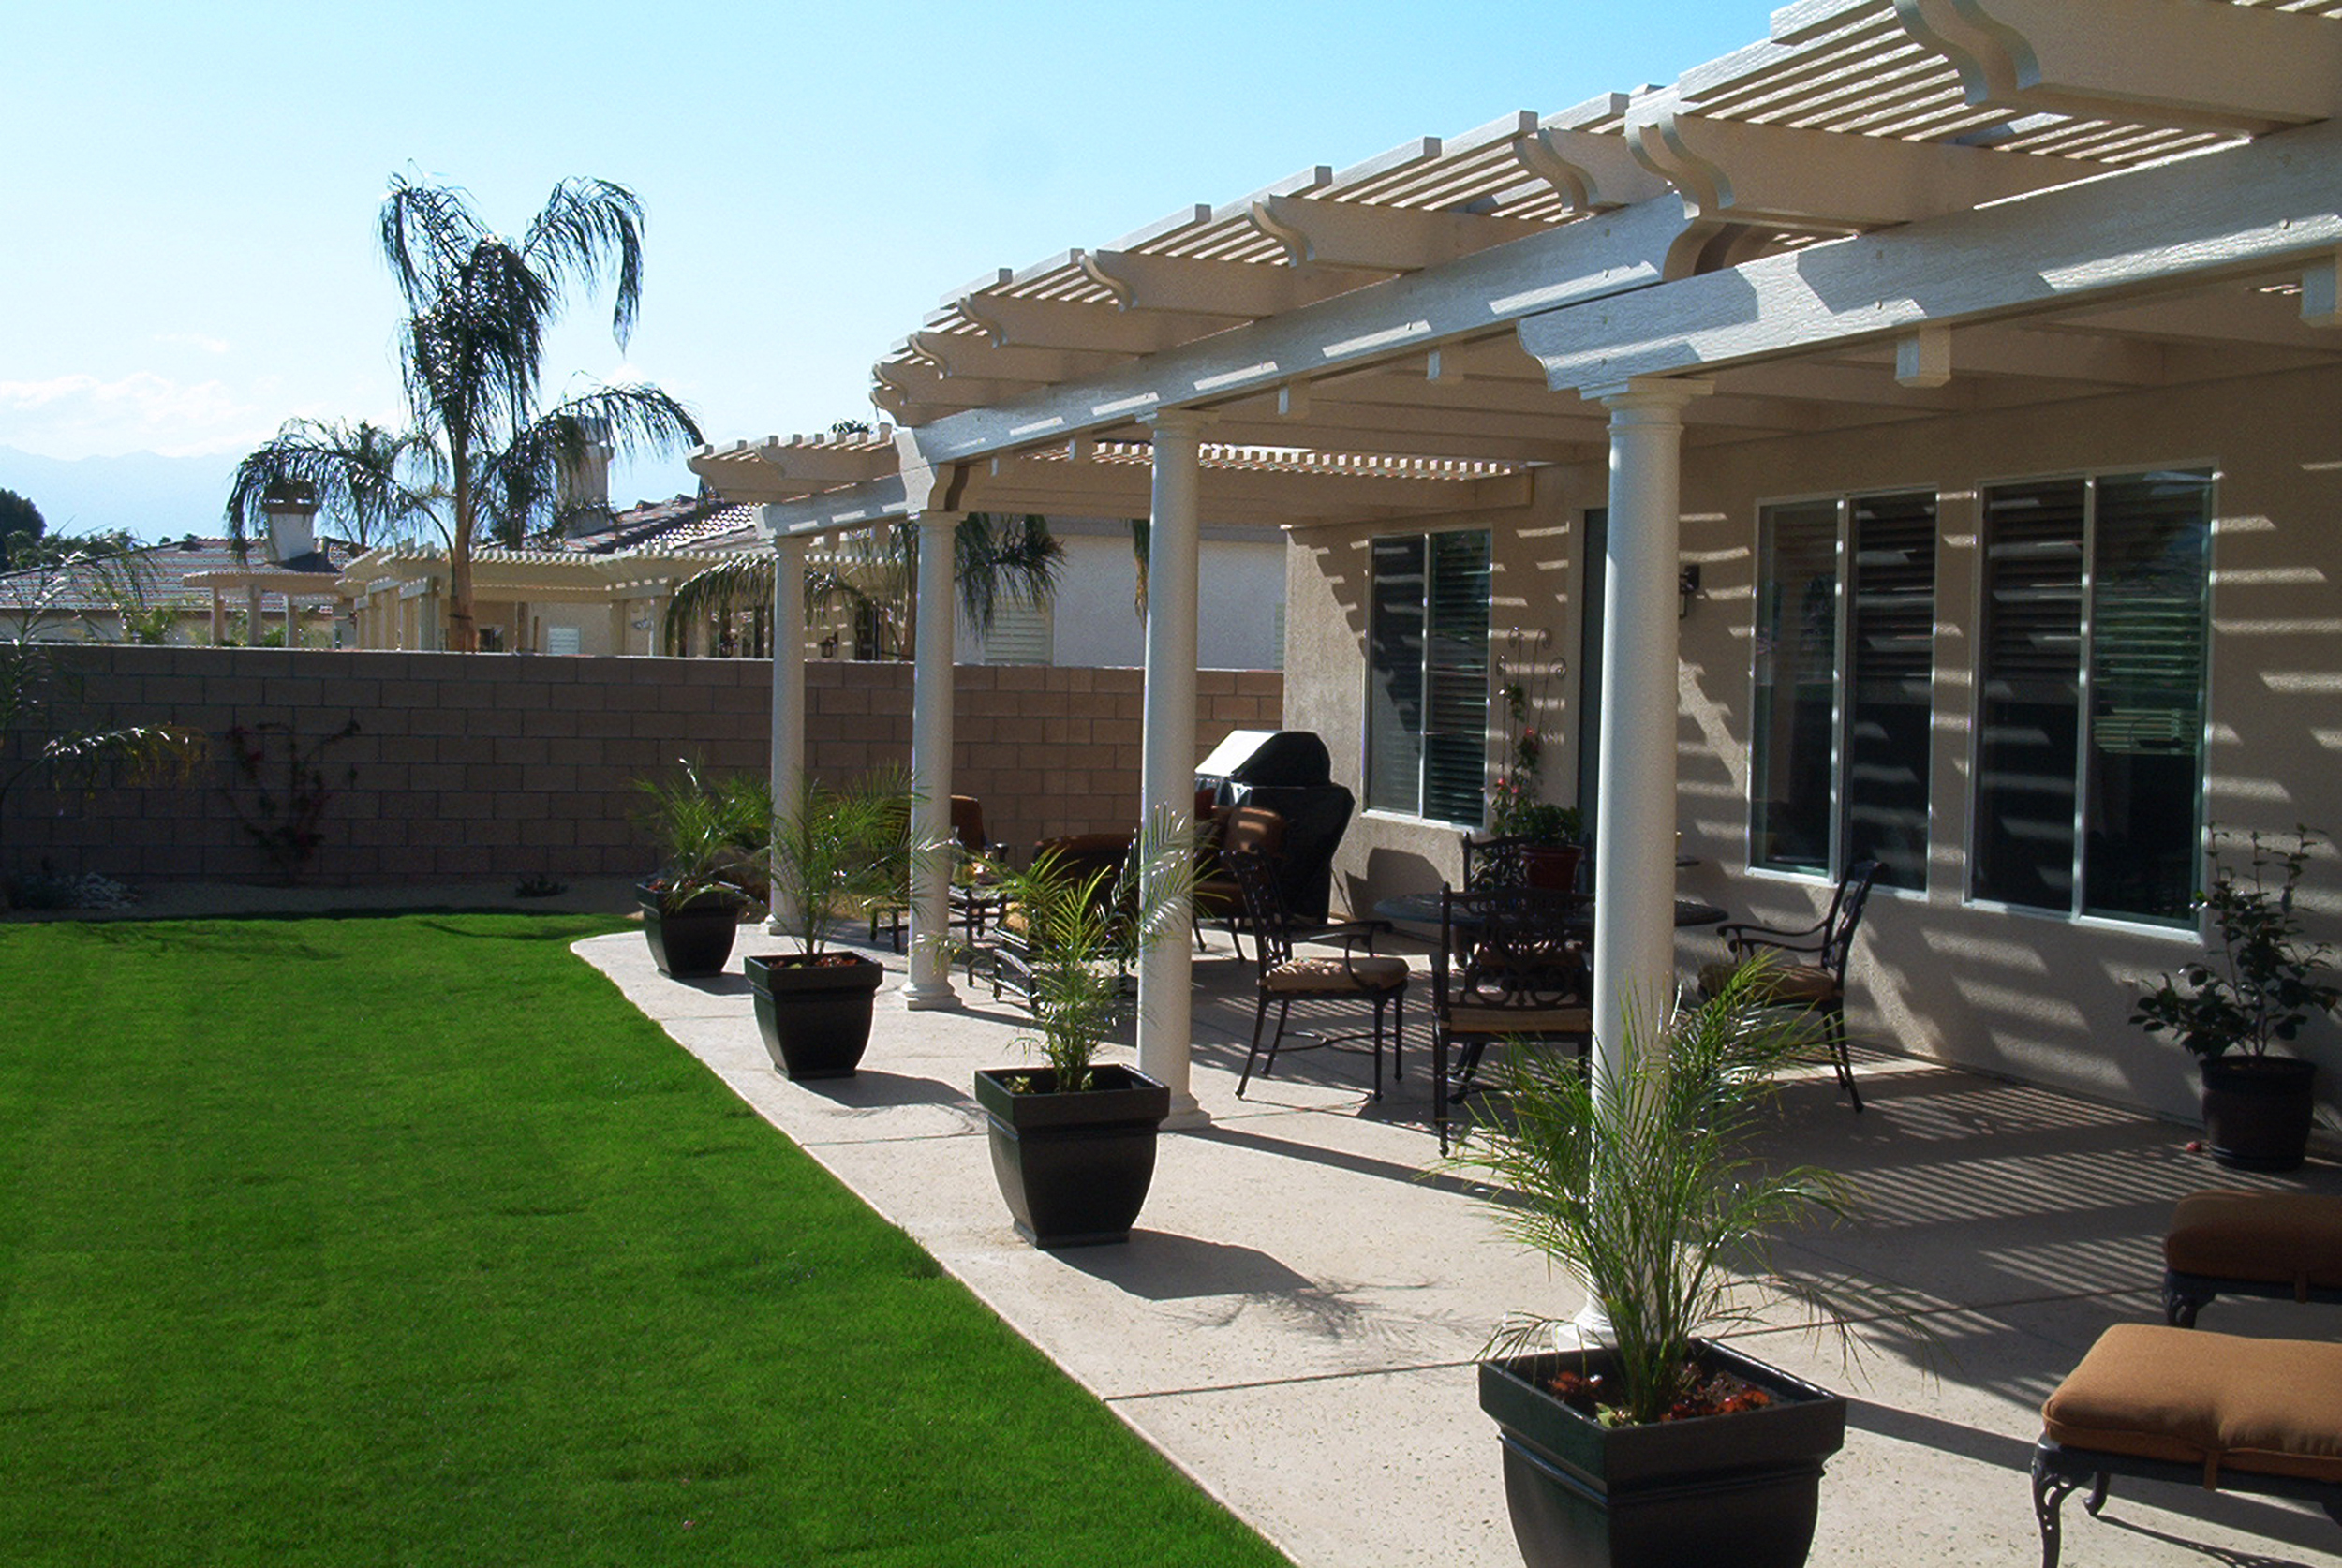 Elitewood Lattice Patio Covers - SO CAL CONTRACTORS ... on Patio Cover Ideas For Winter id=88452